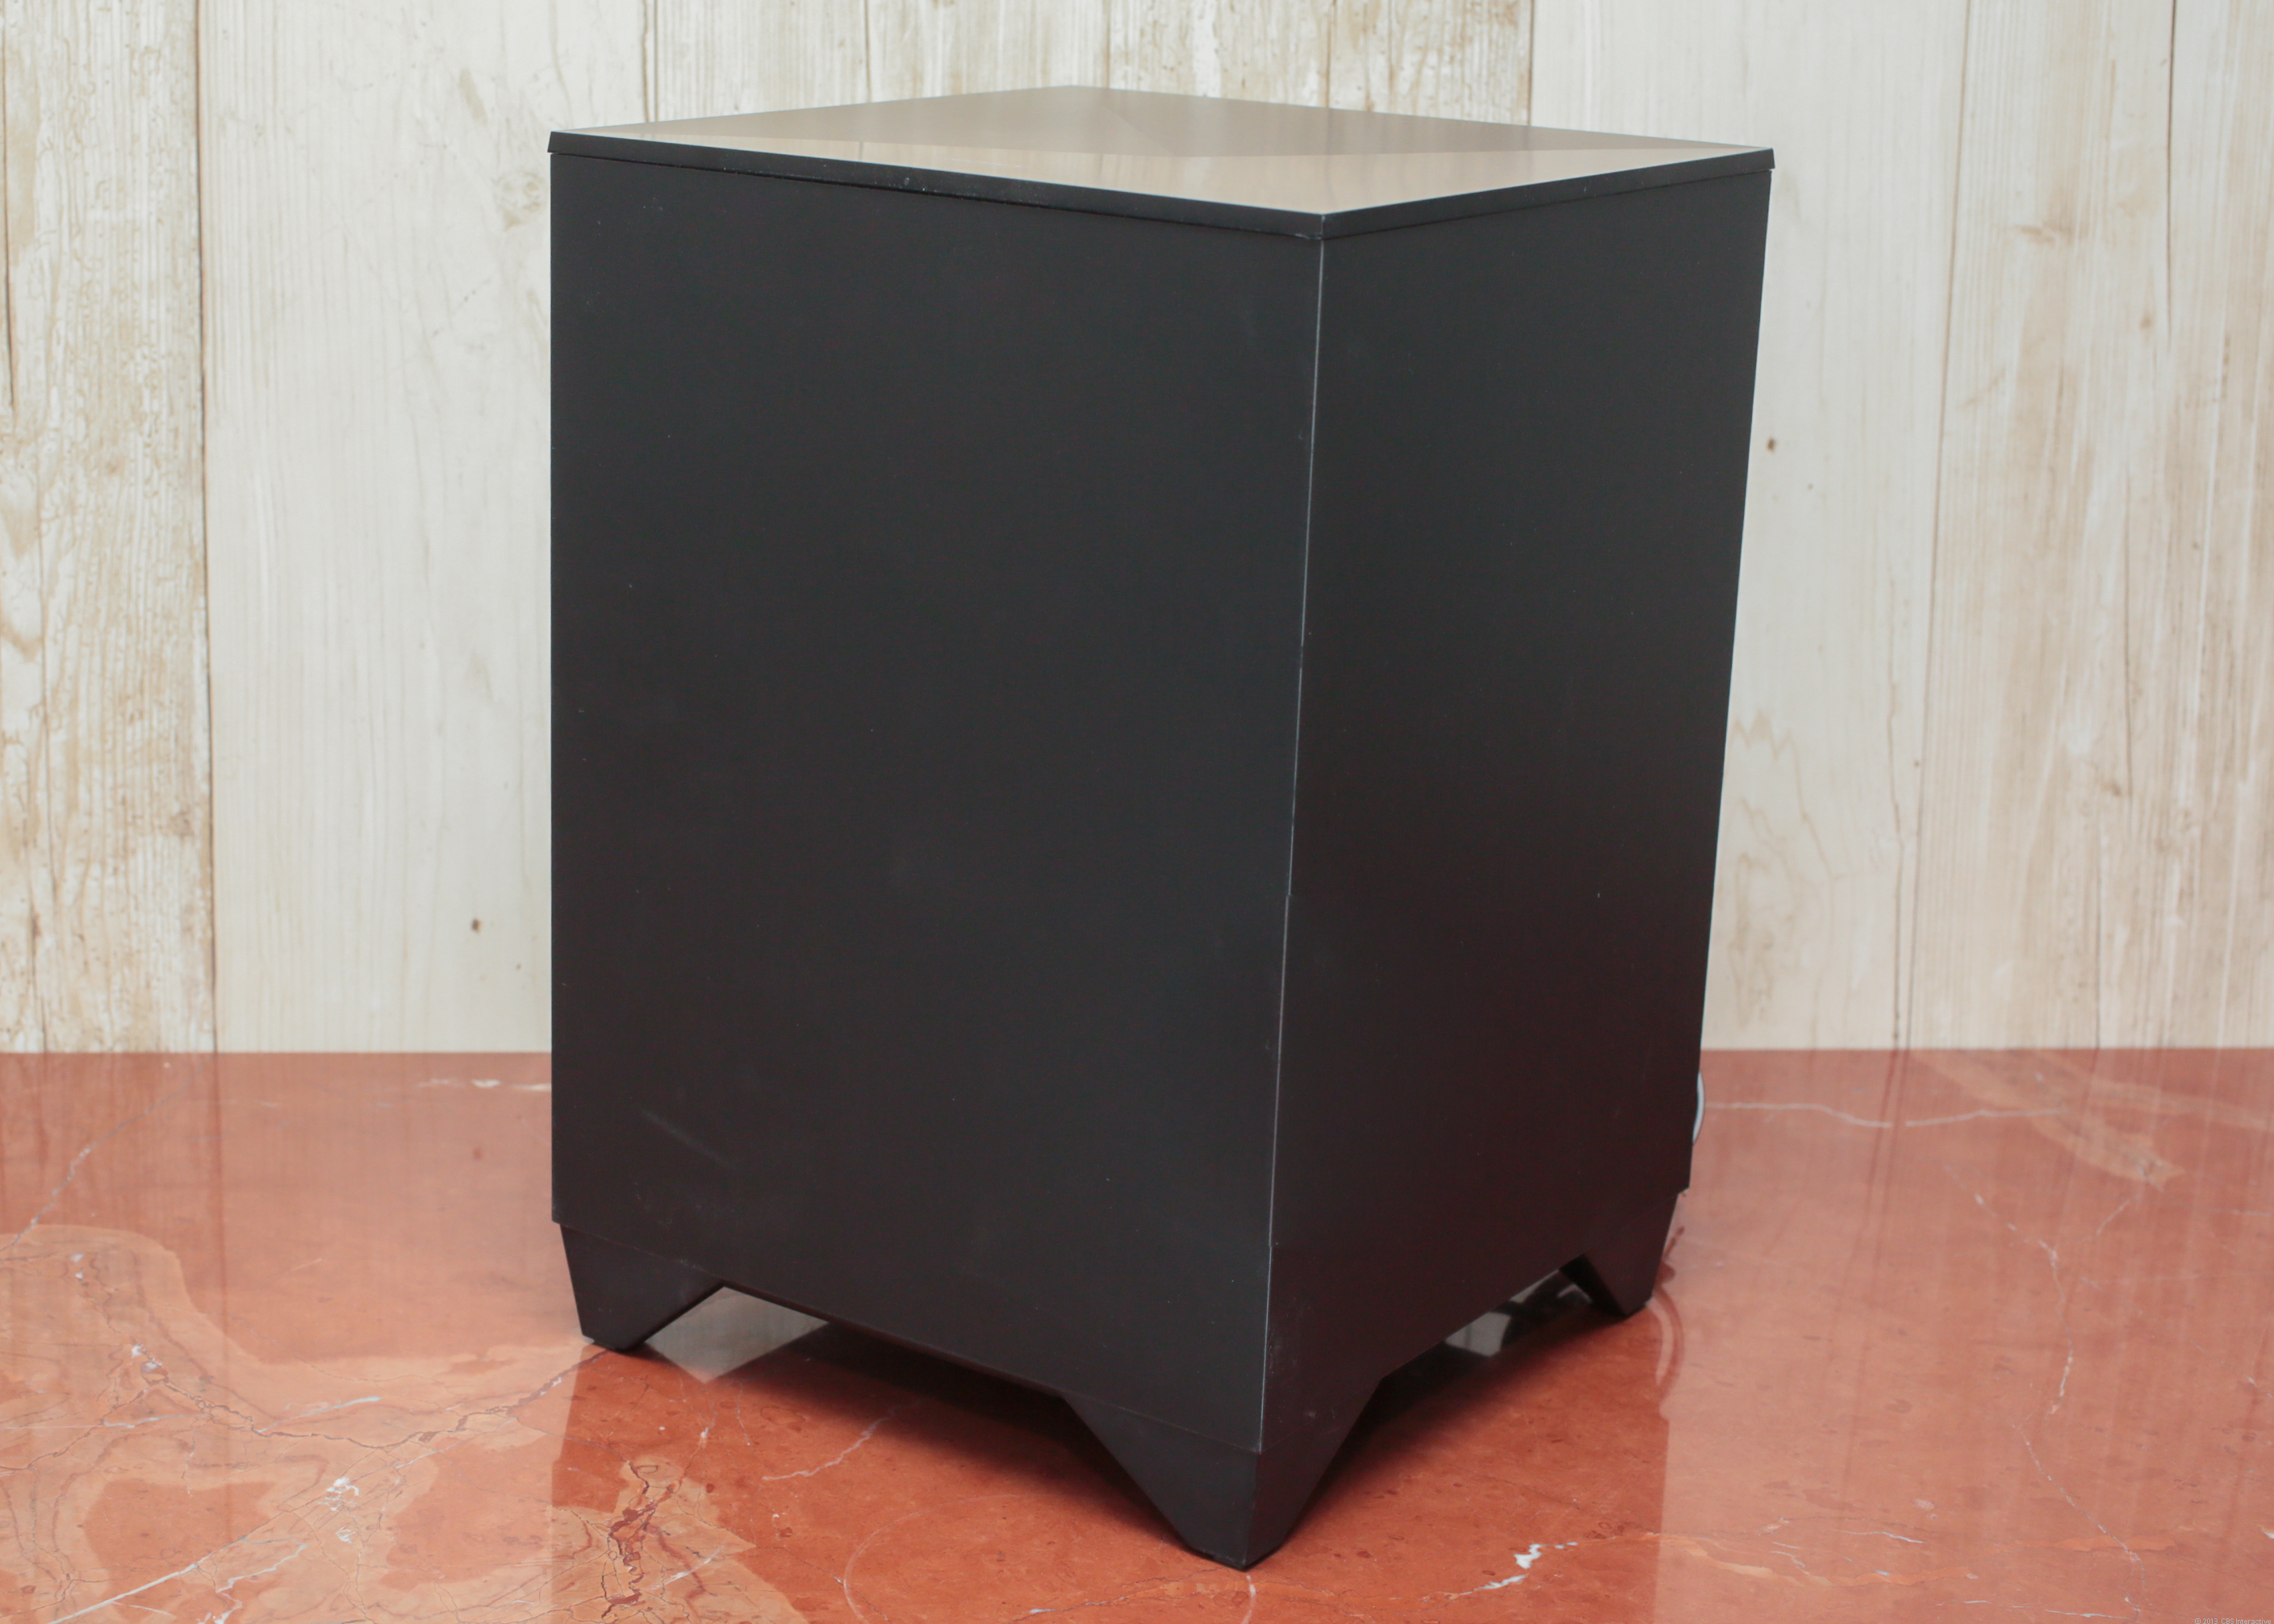 Sony HT-CT260 subwoofer